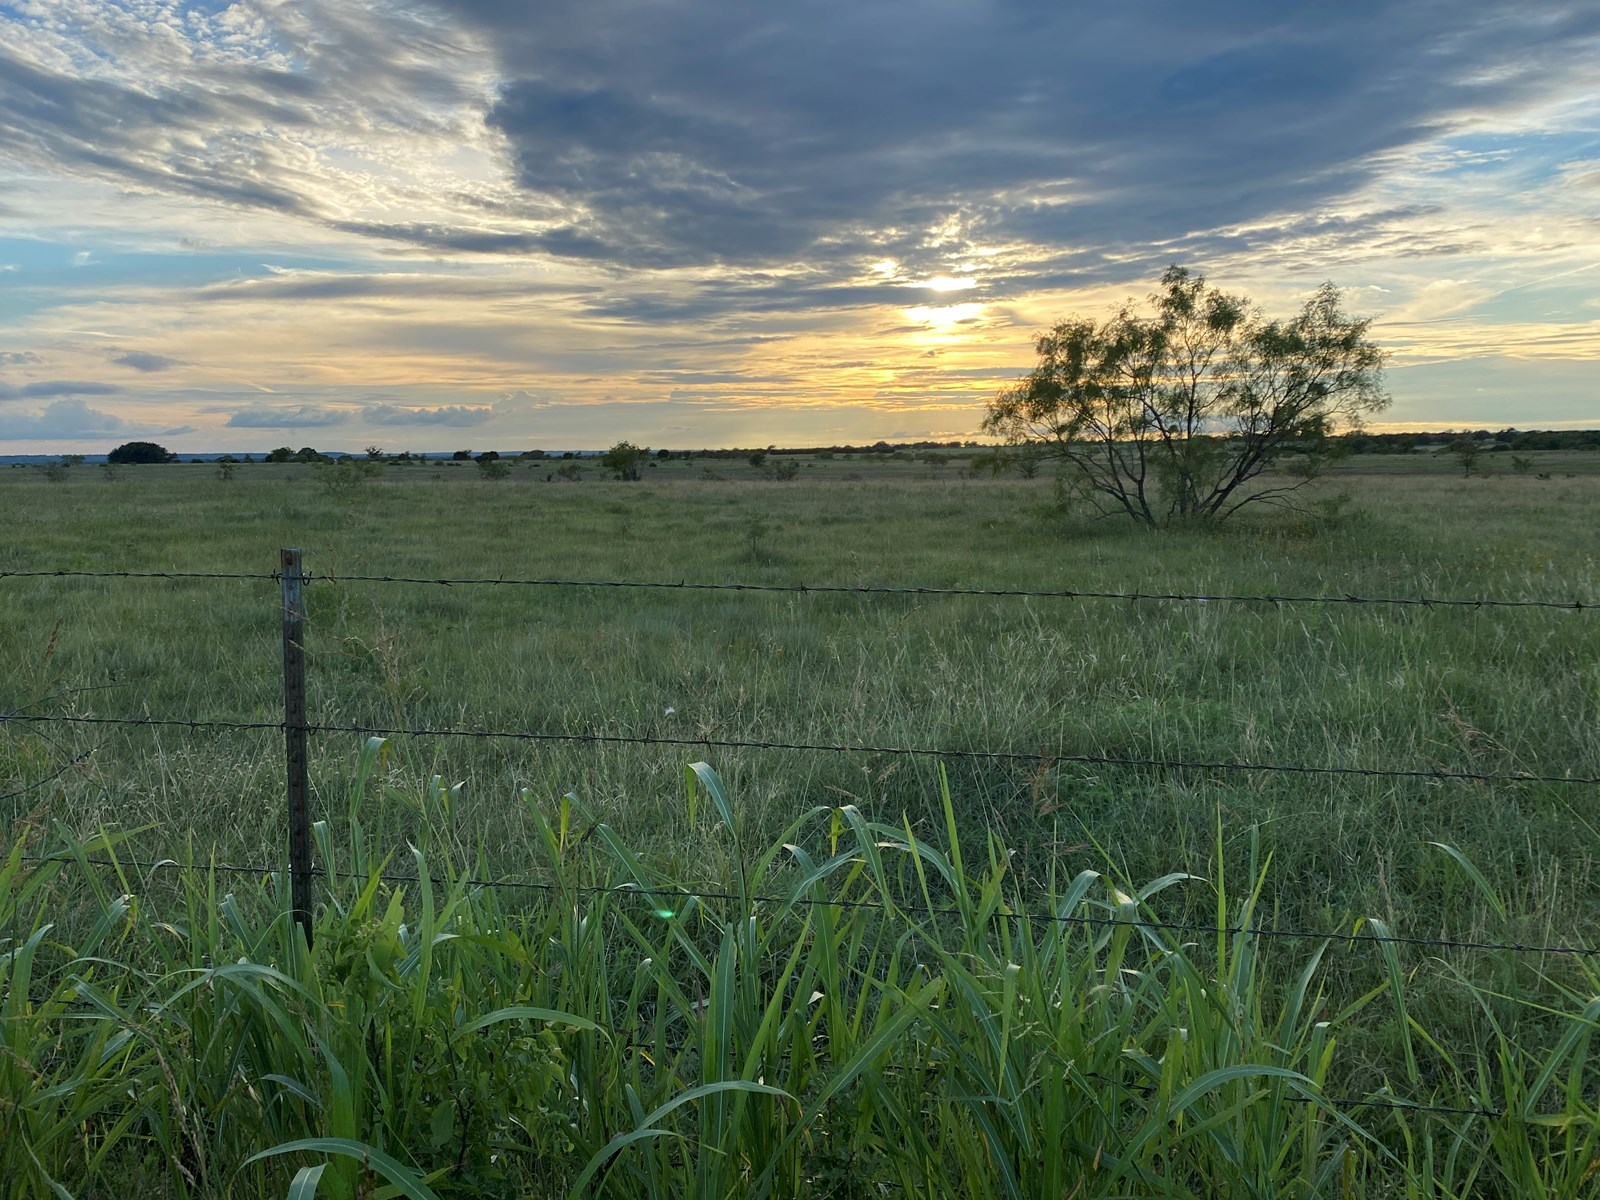 Land for Sale in Central Texas - 34 Acres in Hamilton County